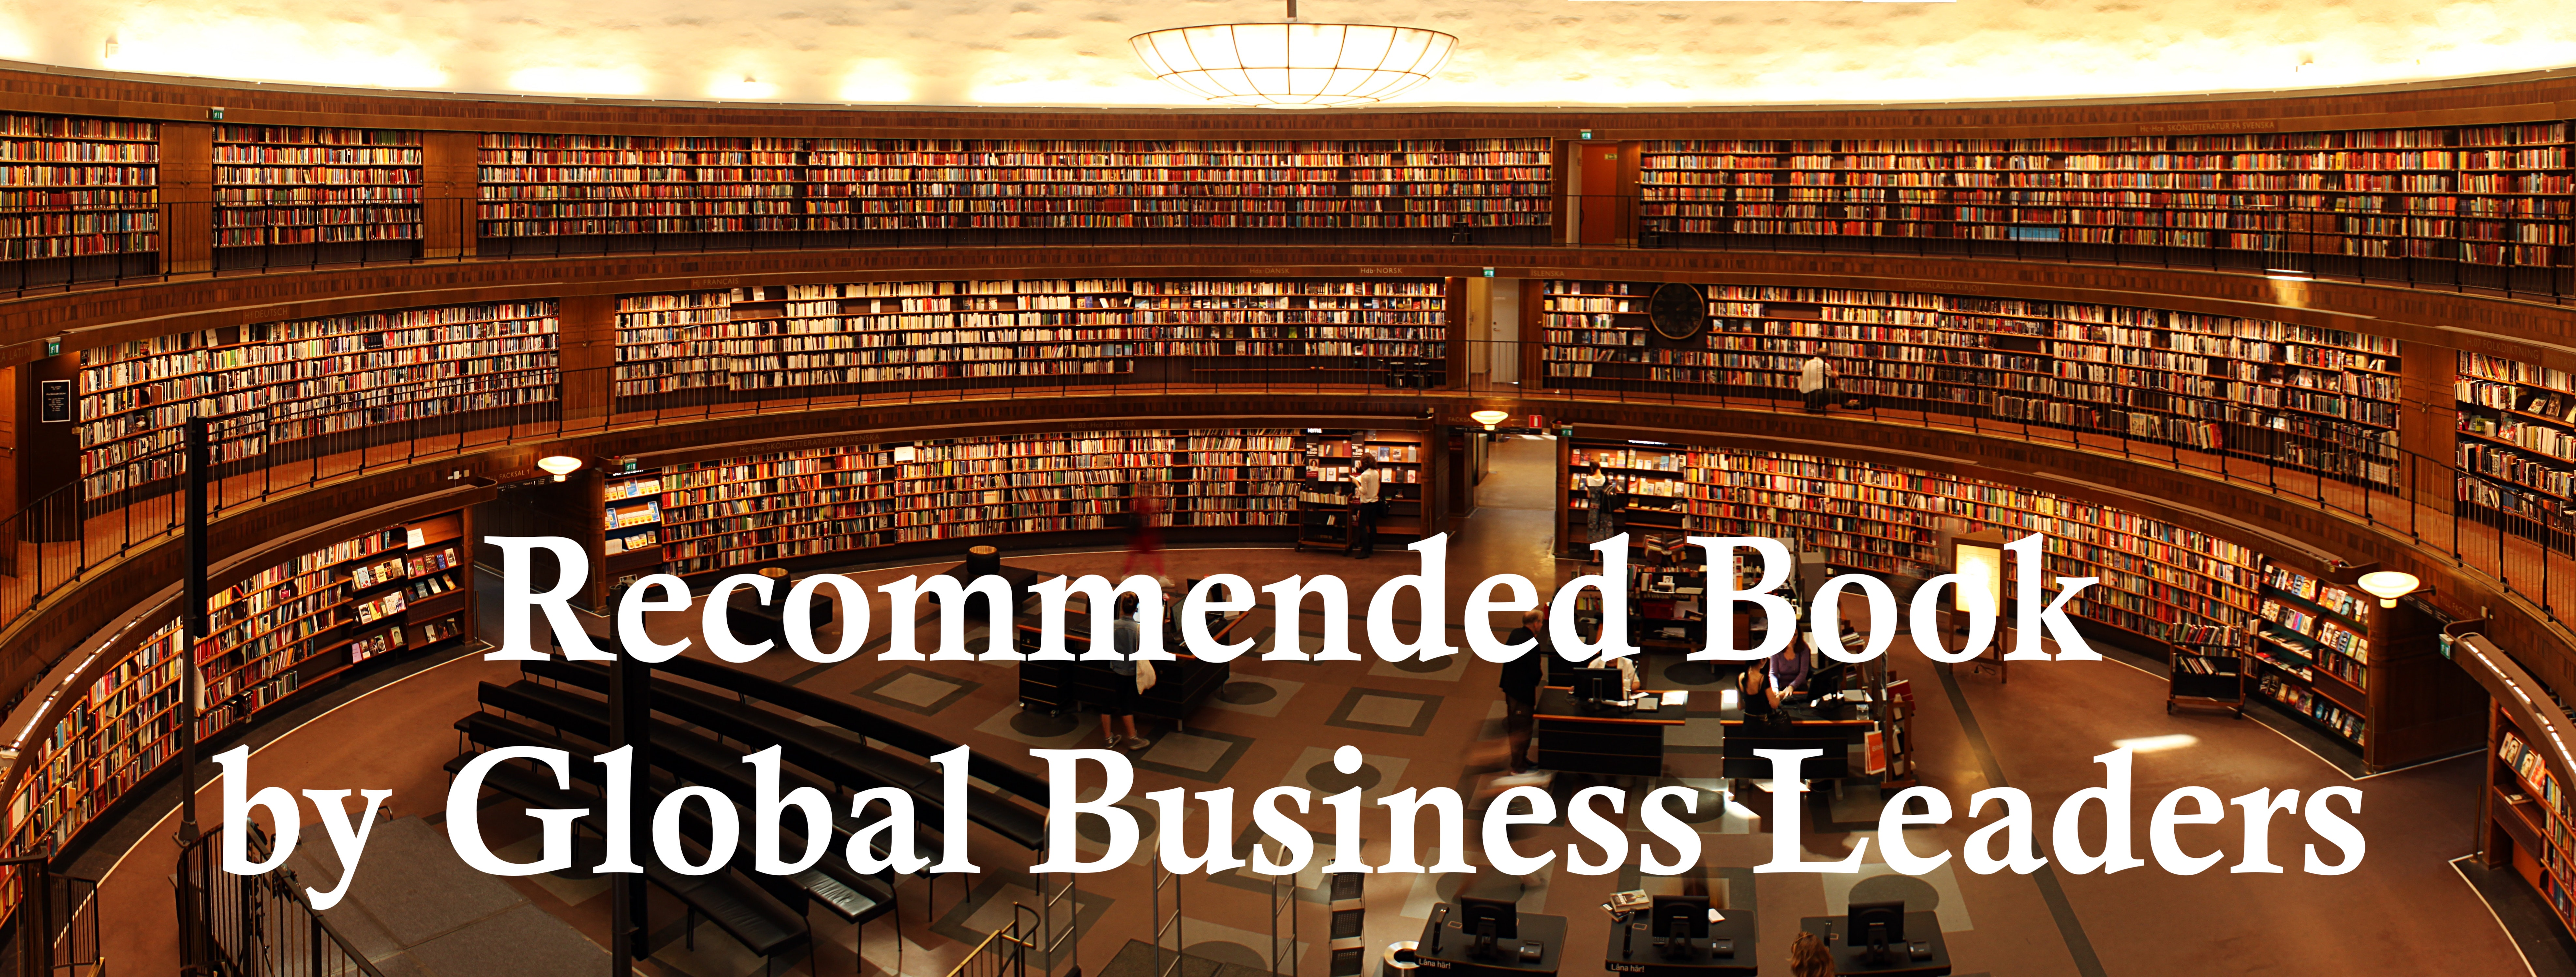 recomm-book-by-global-leaders